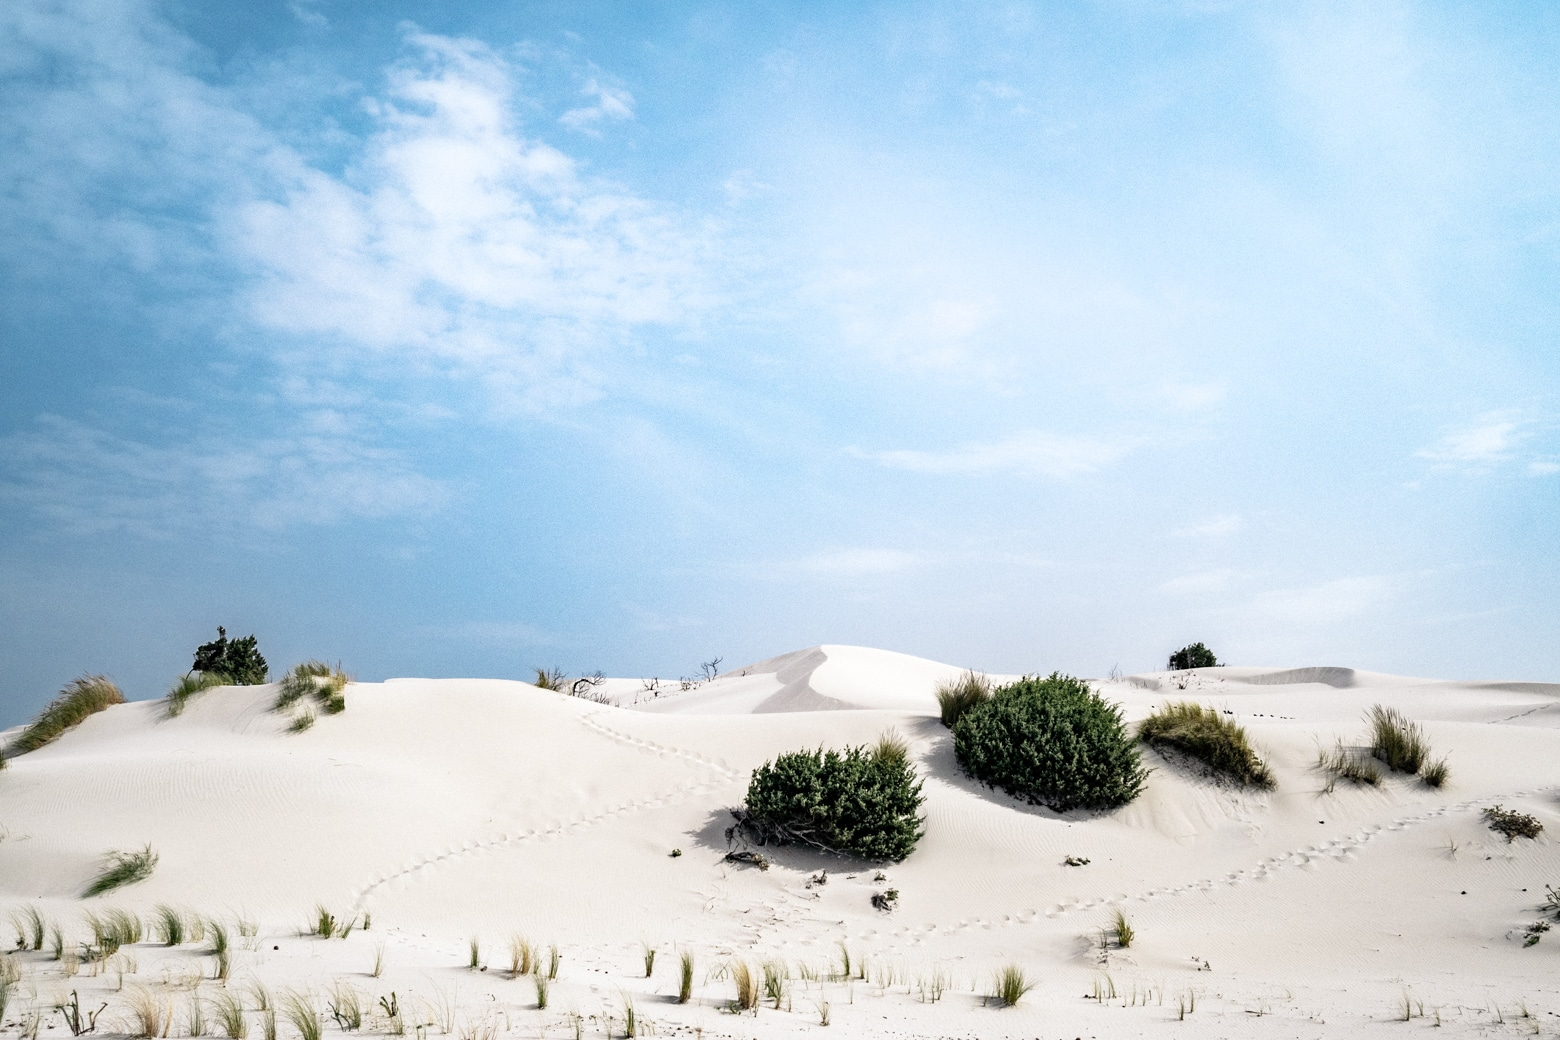 Porto Pino Sand Dunes and Blue Skies